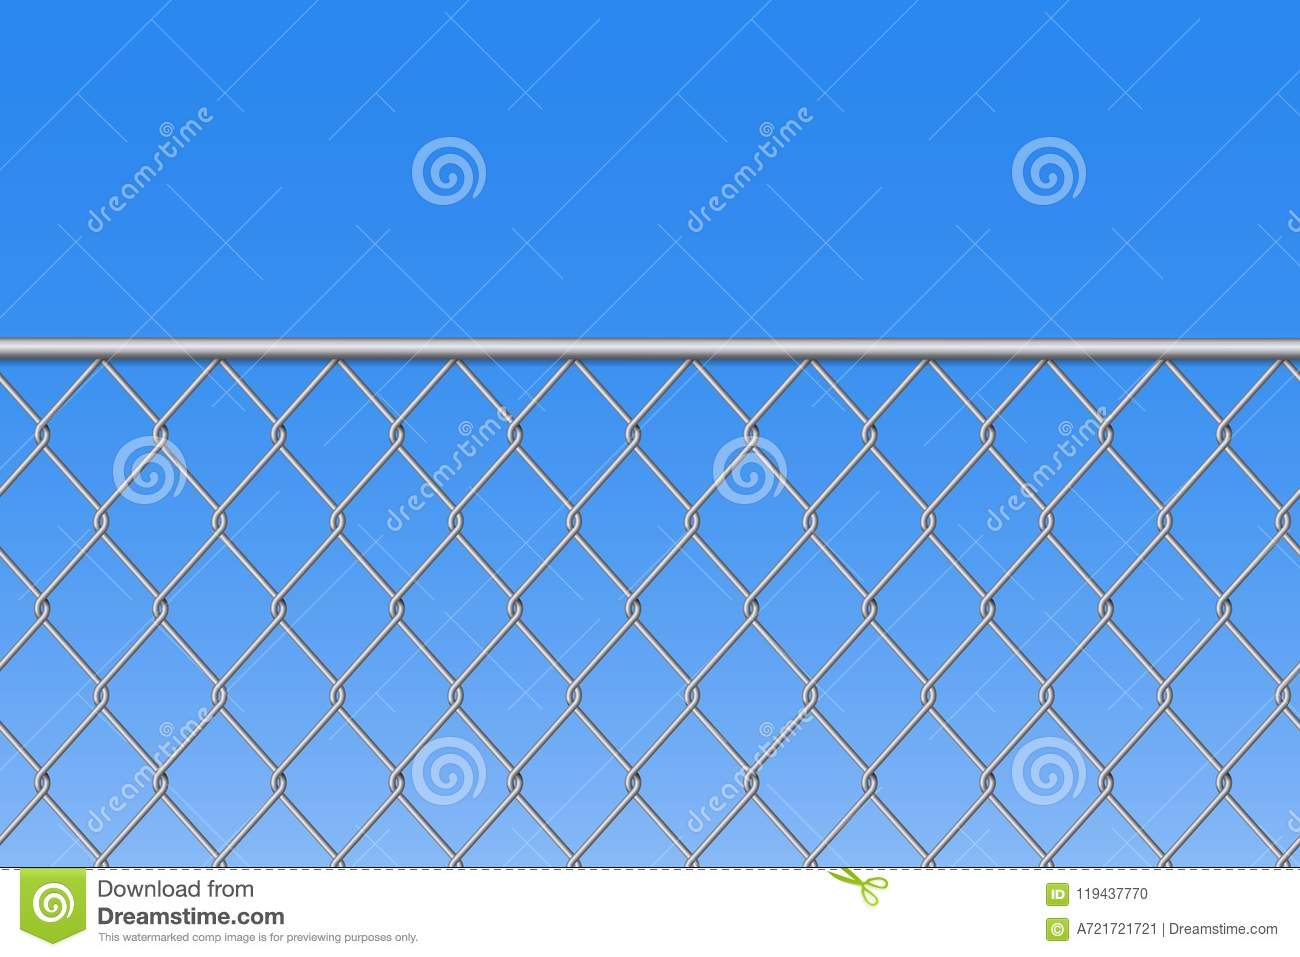 Creative Illustration Of Chain Link Fence Wire Mesh Steel Metal ...